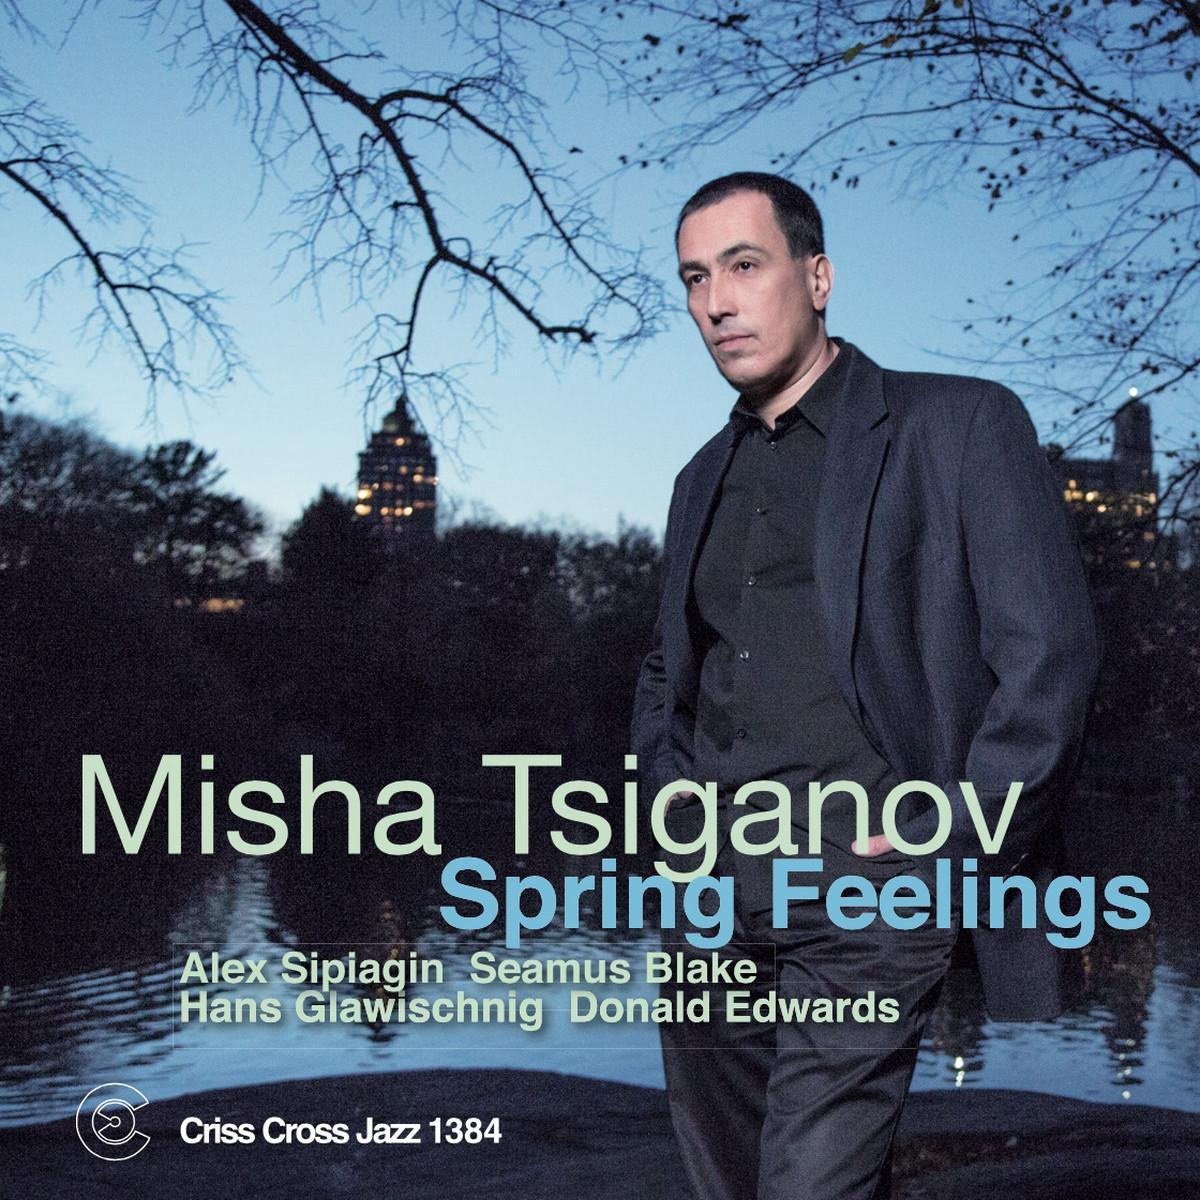 Misha Tsiganov «Spring feelings»